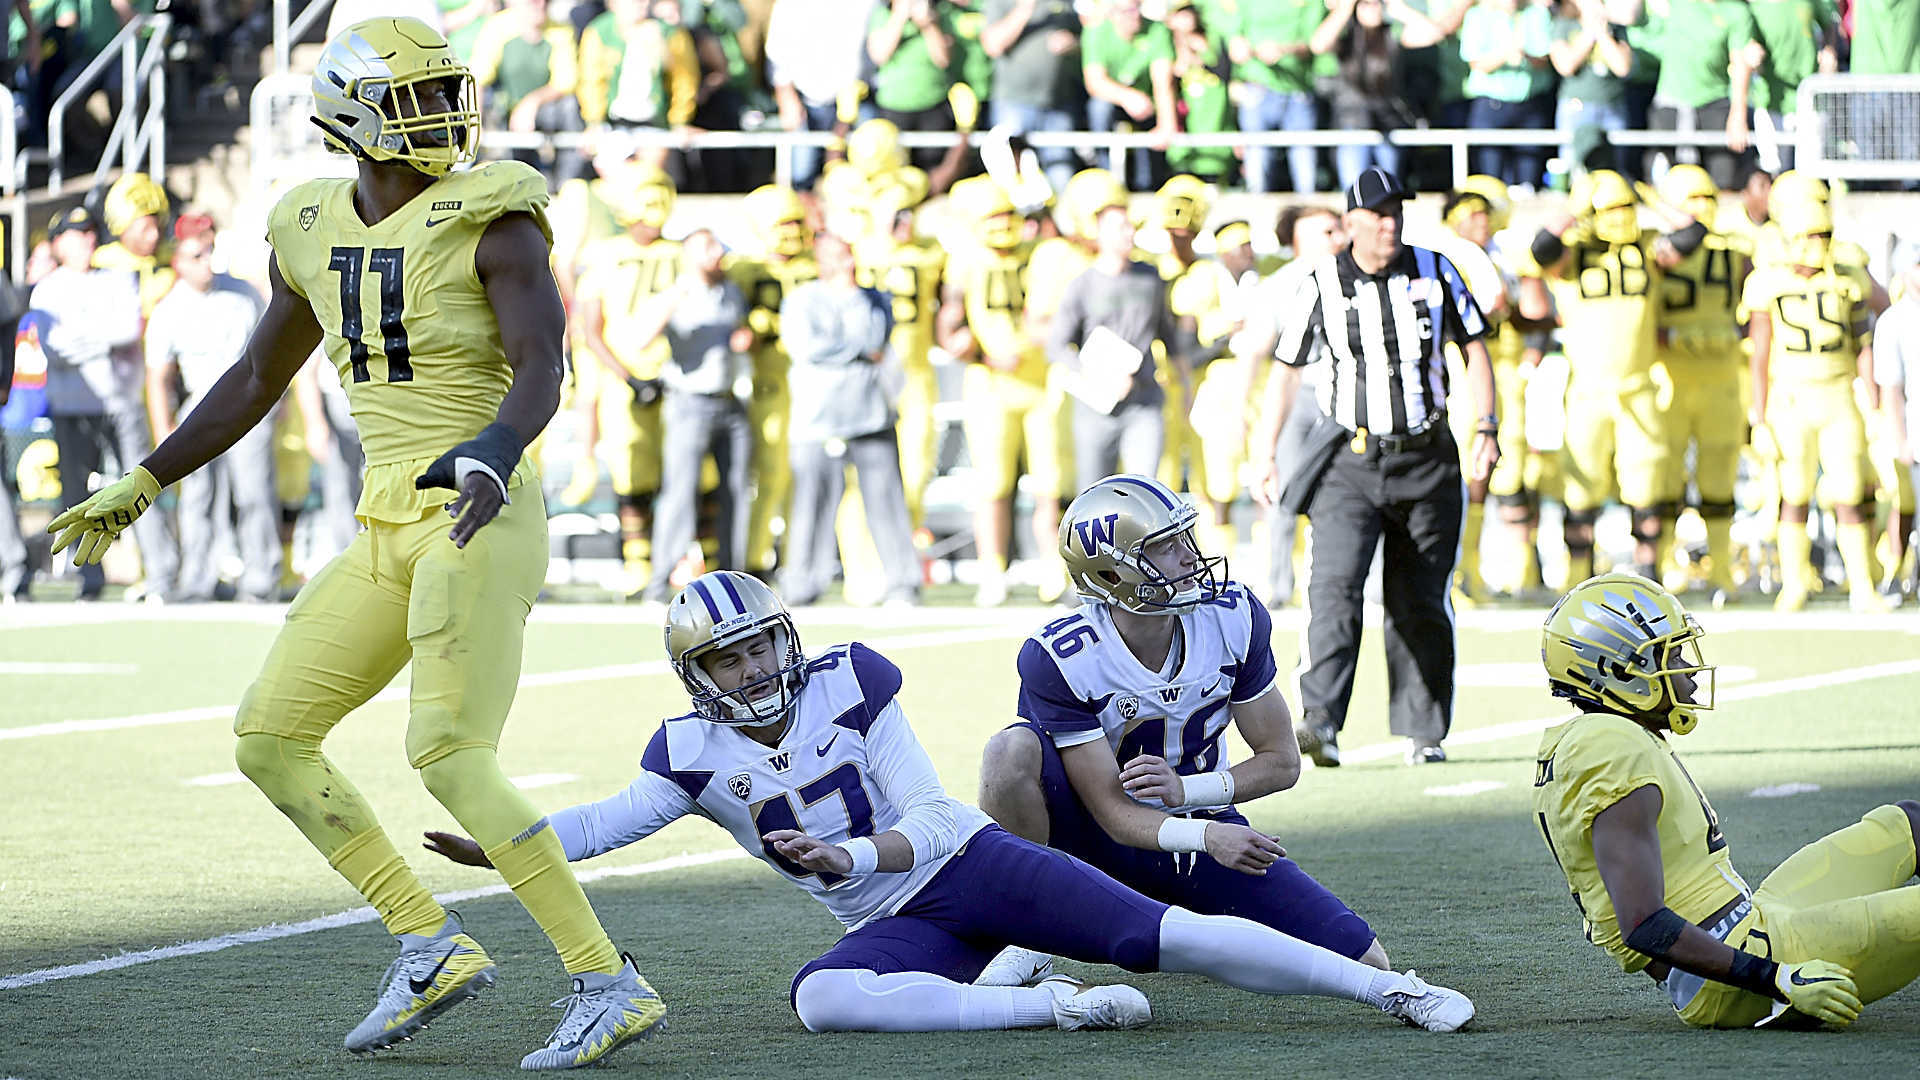 Oregon-washington-101418-getty-ftr_1uzmvhoa8n8mn1foic26b02em0